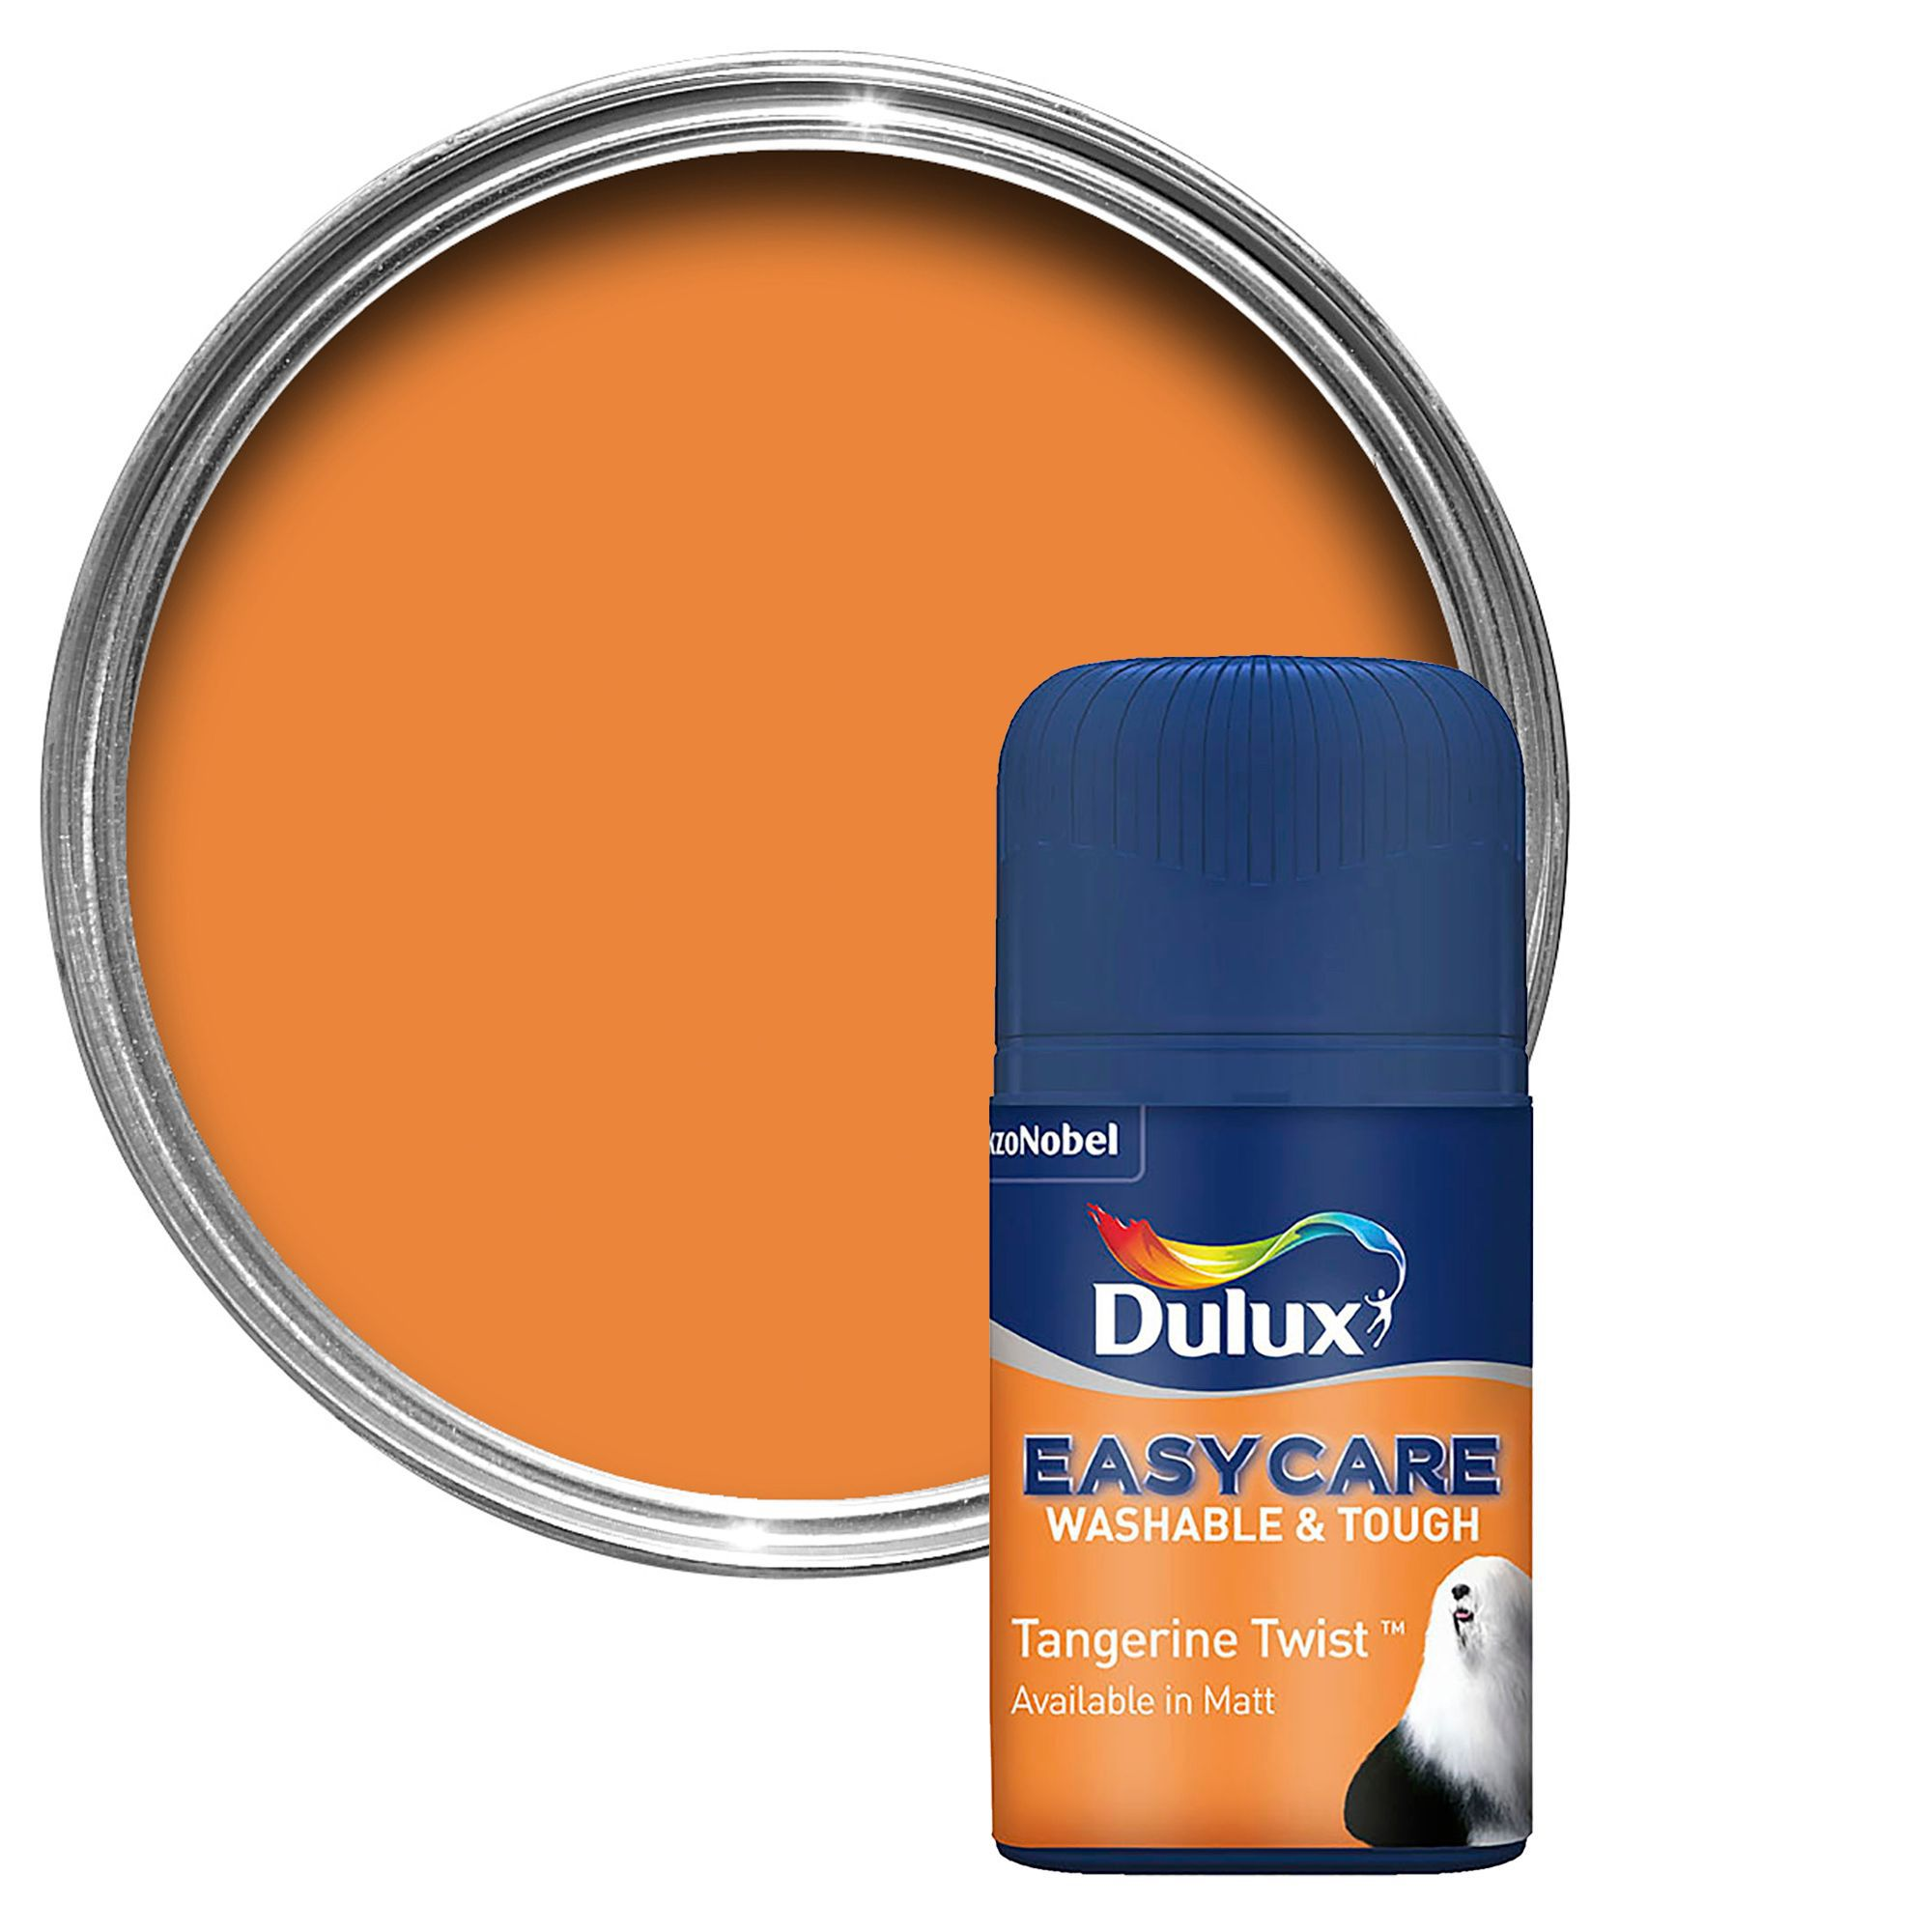 free dulux paint testers